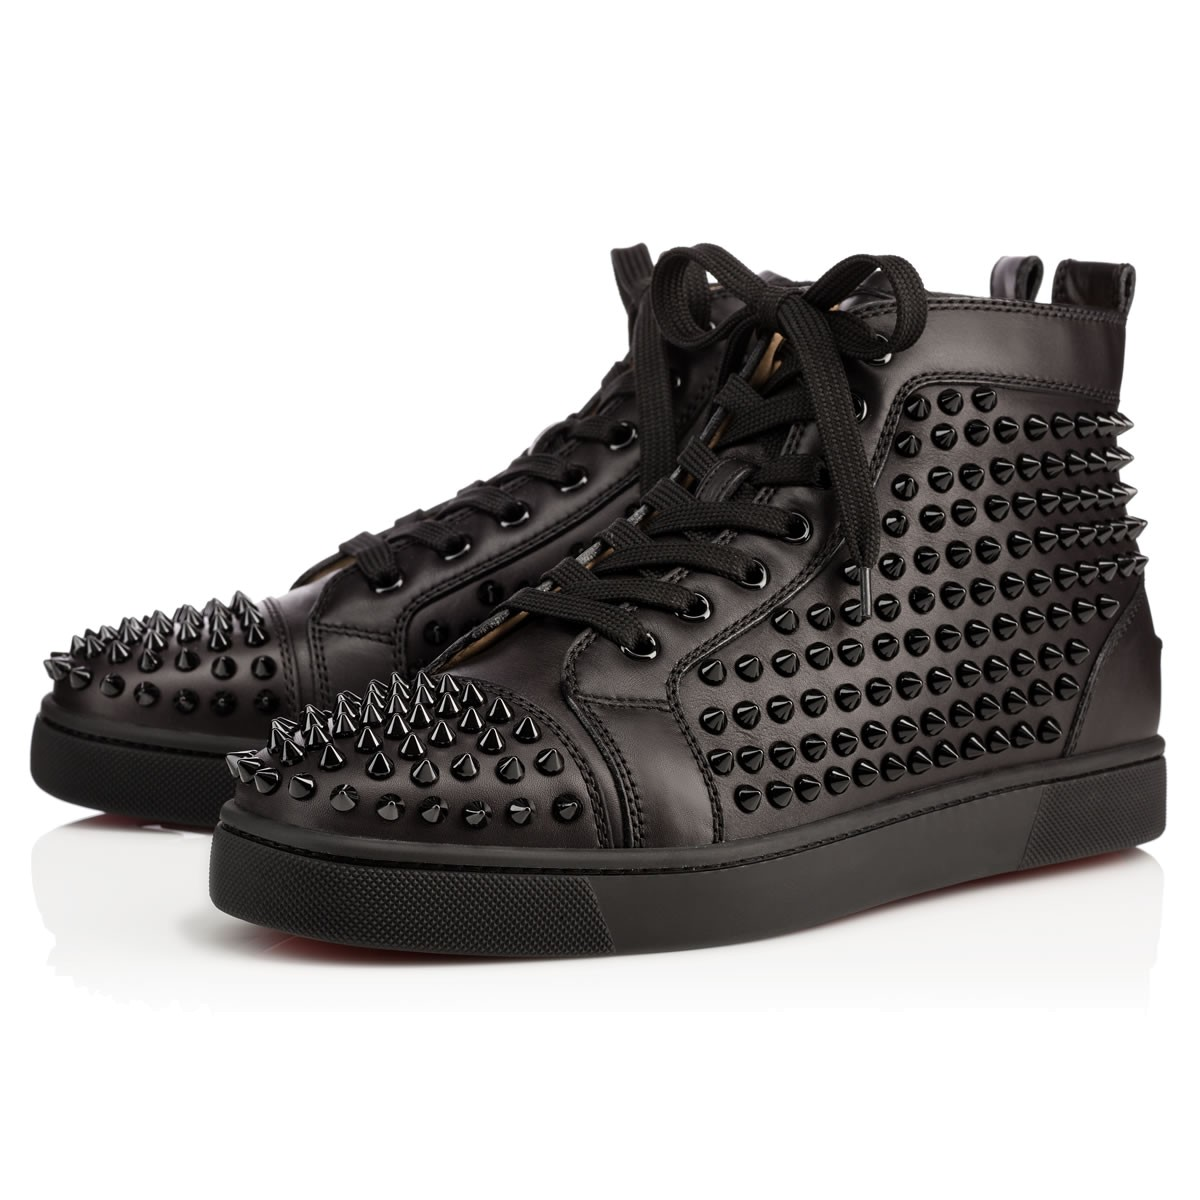 low priced 29cce 40b83 Shoes - Louis Spikes Mens Flat - Christian Louboutin ...